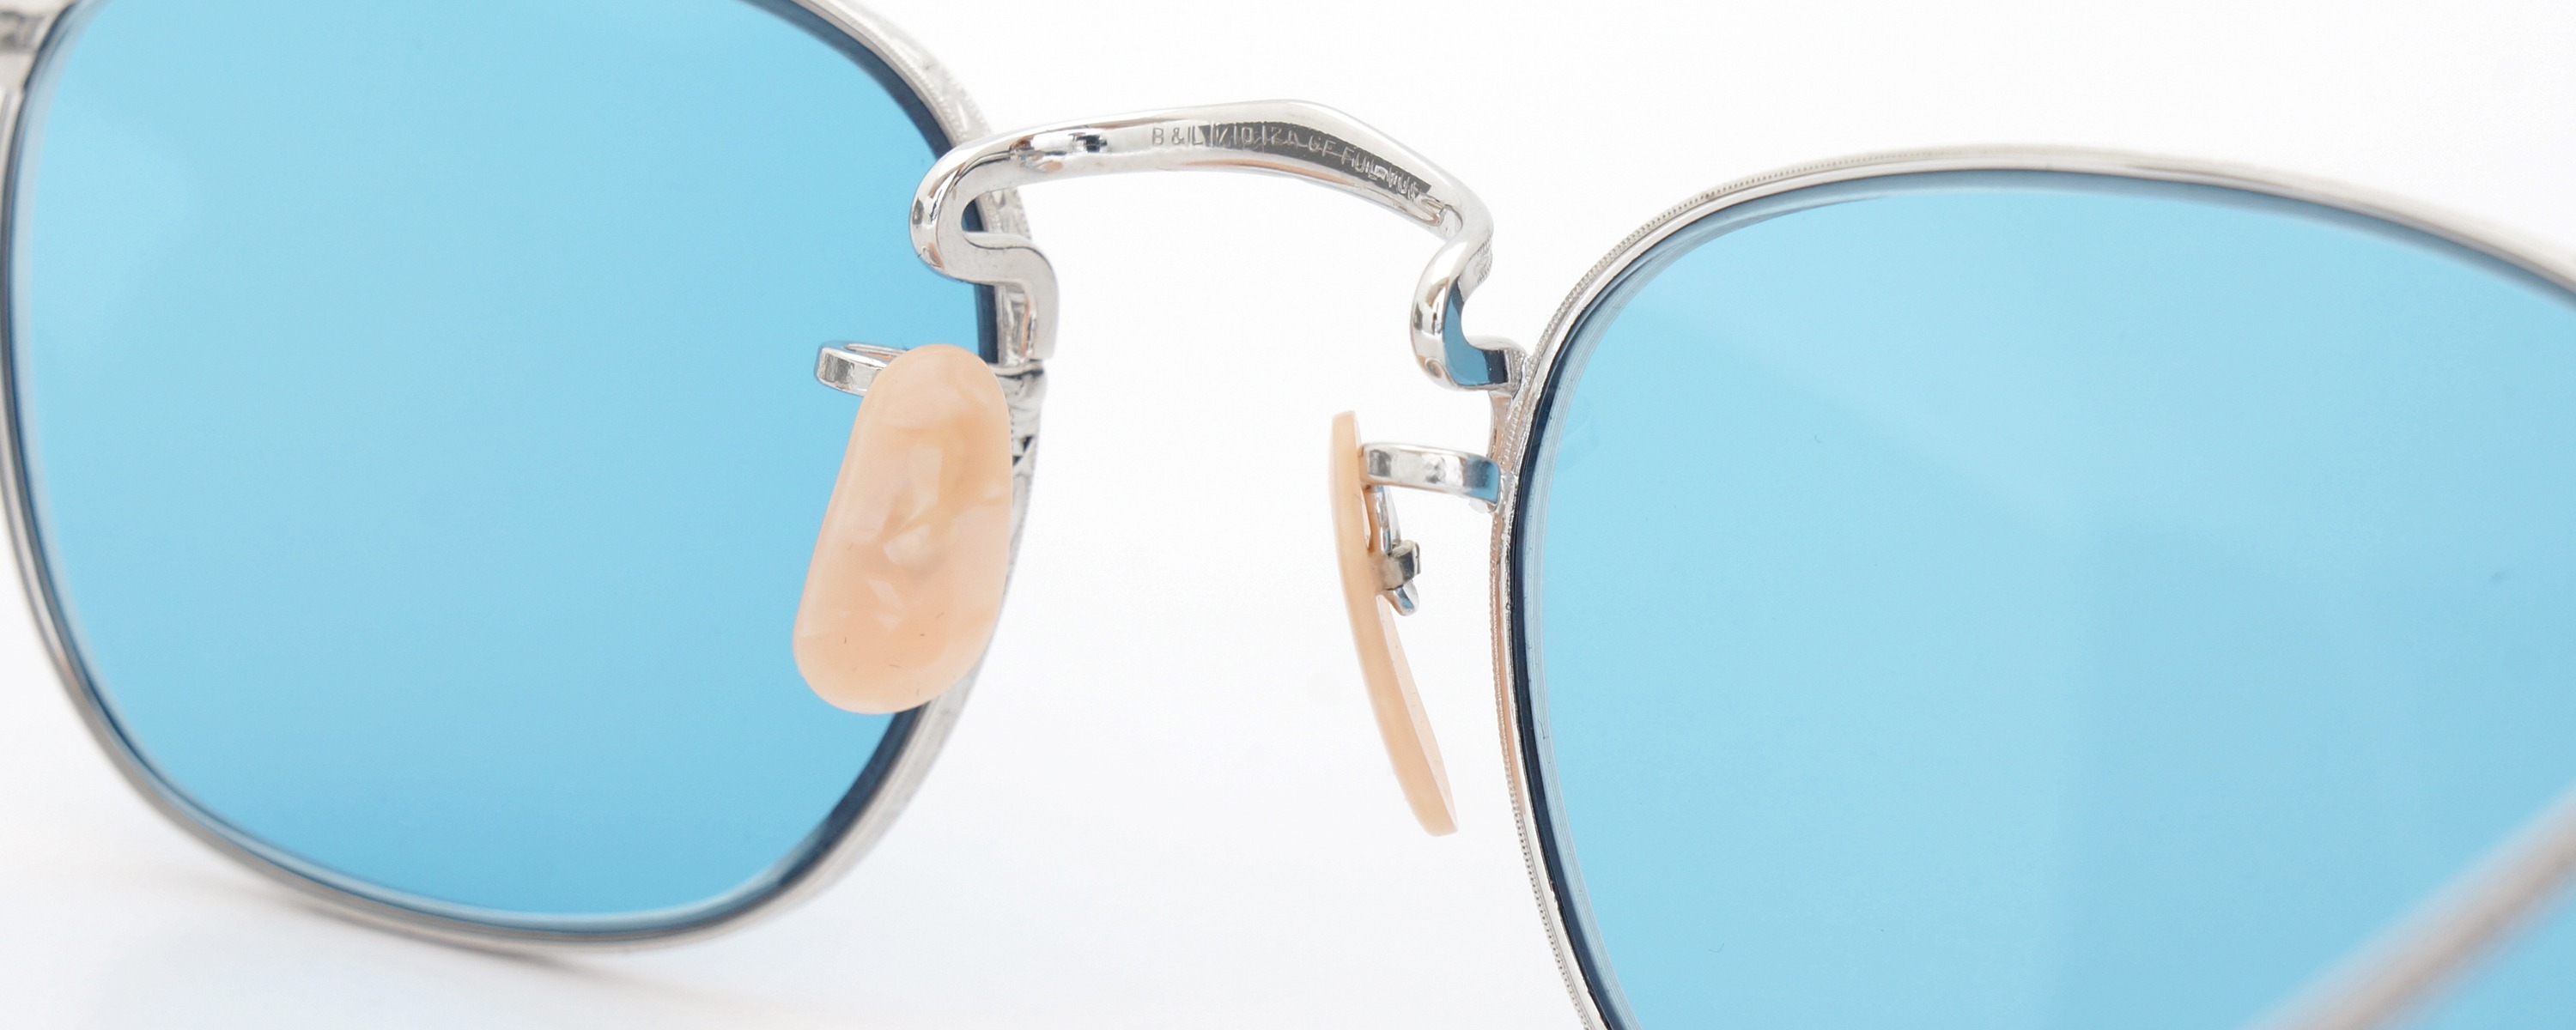 The Spectacle メガネ 1930s-40s Bausch&Lomb Full-Frame Ful-Vue Whitaker WG 45-21 Light-Blue-Lense イメージ9